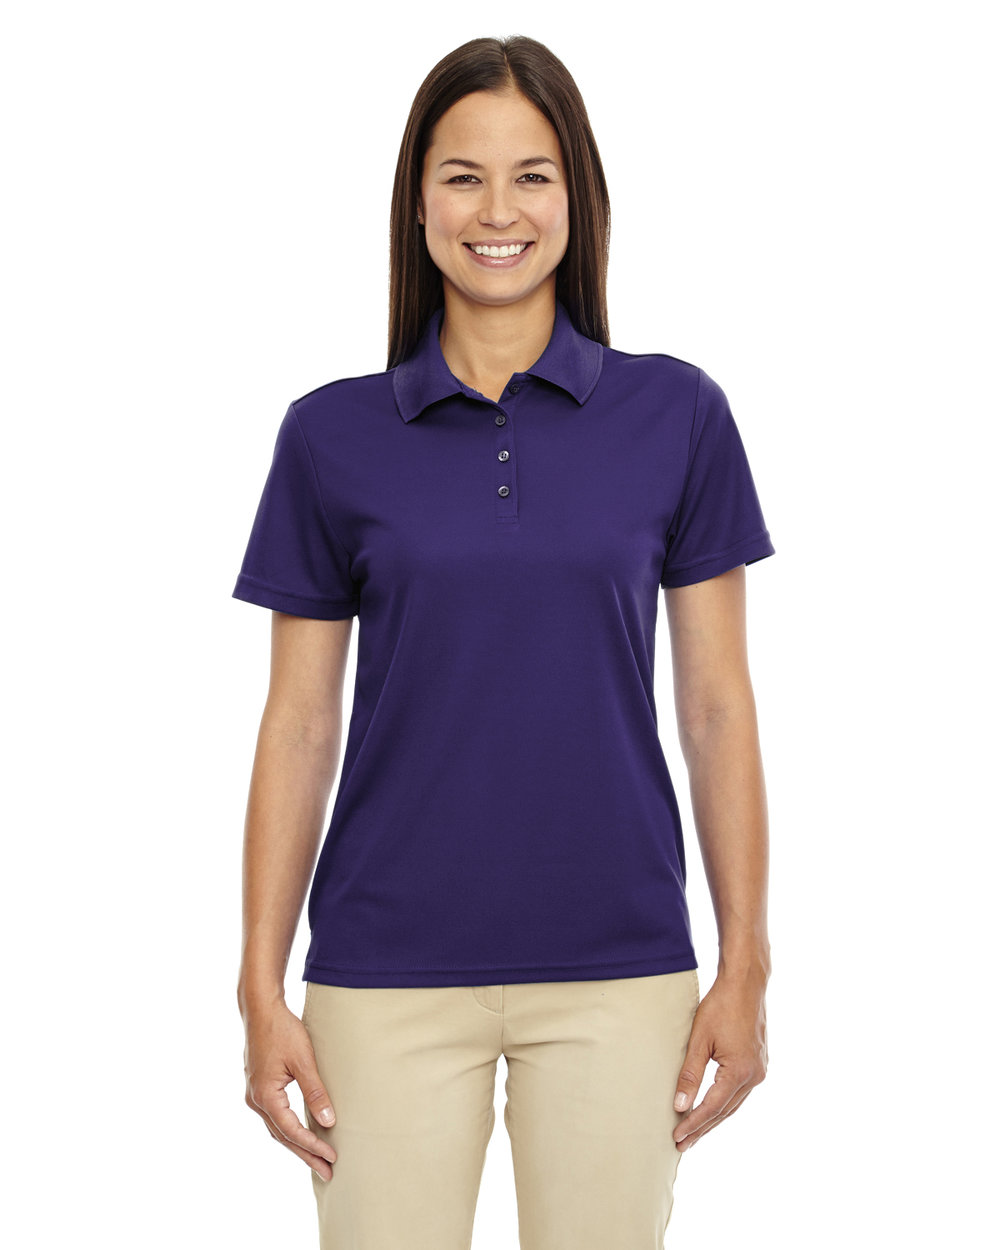 #78181 Women's Core 365 Polo.  $19.00